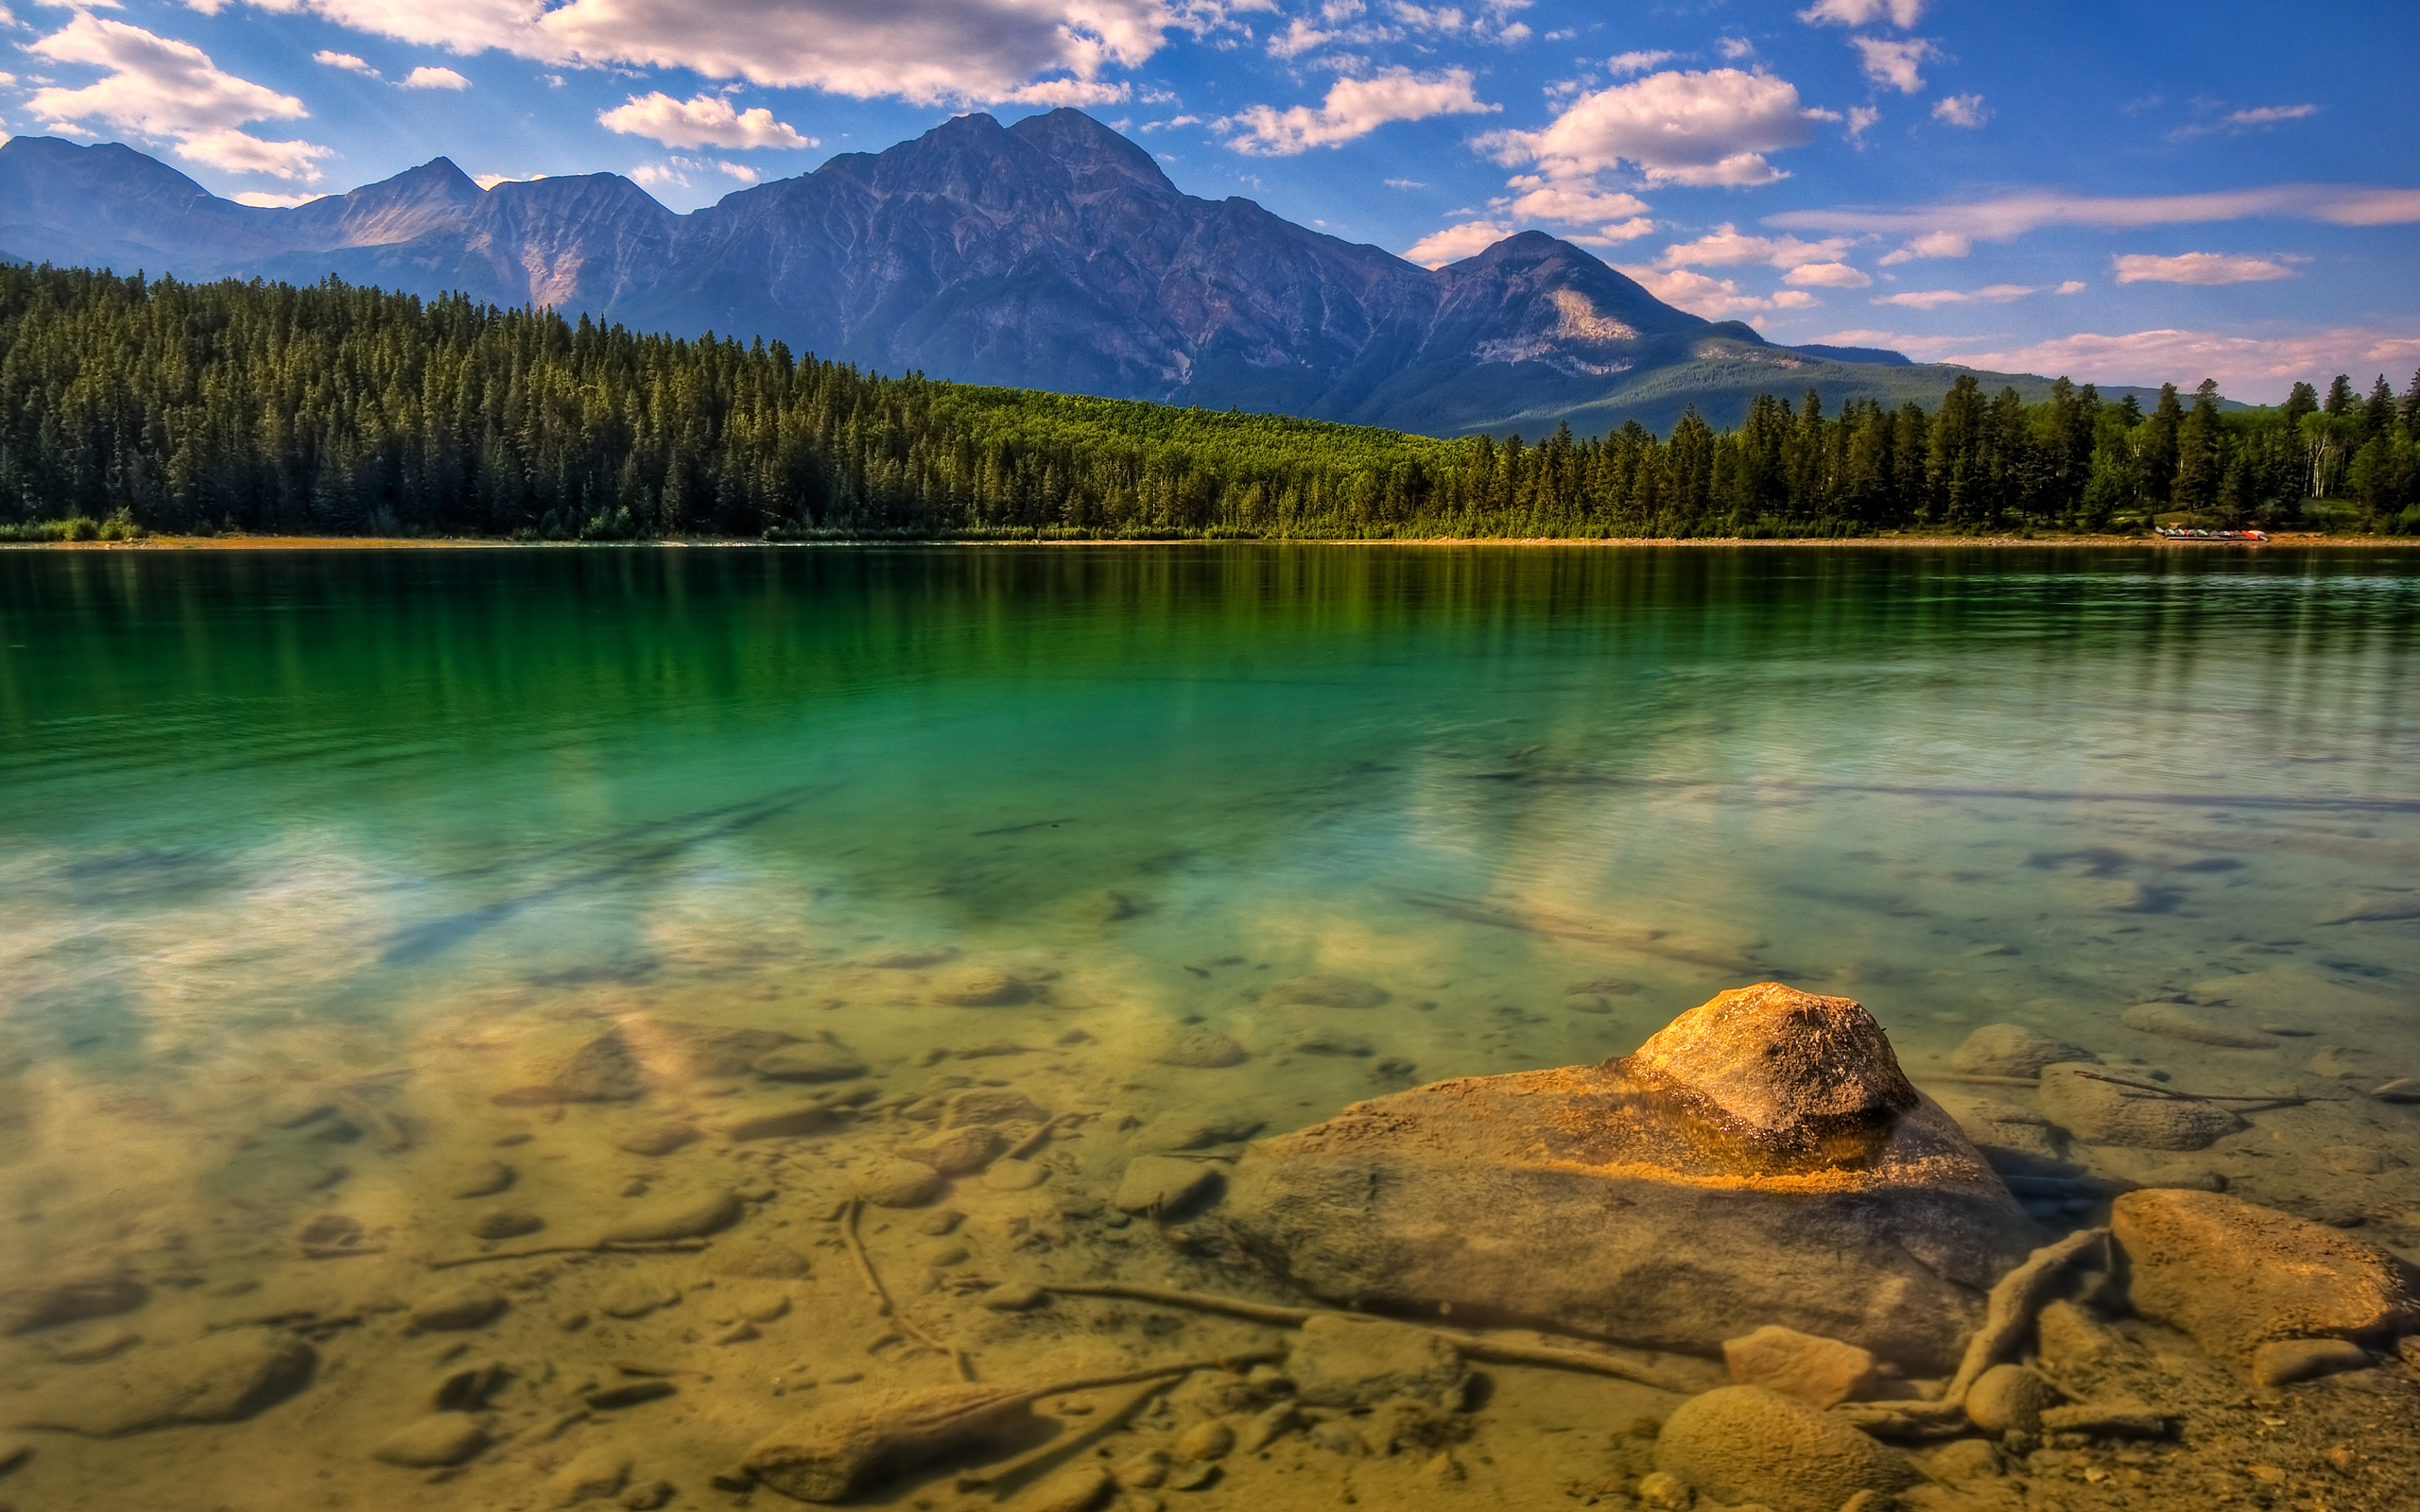 lake wallpaper hd 5343 - photo #6